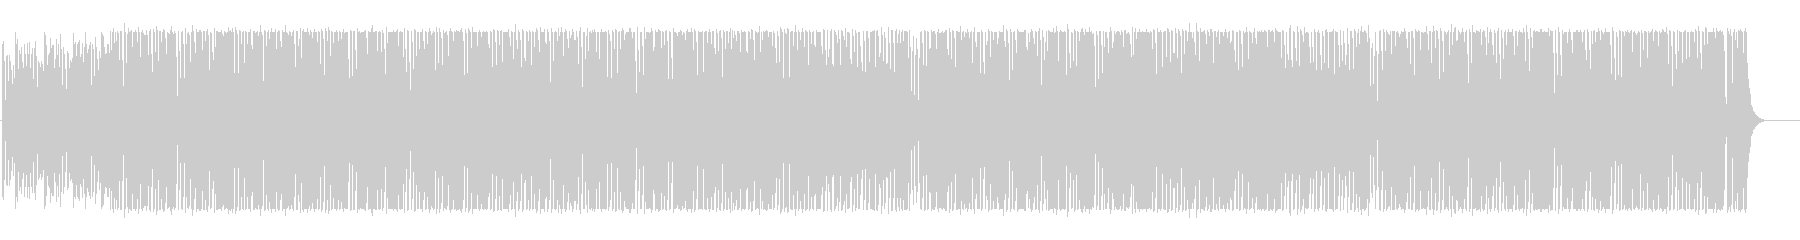 Rhythmic and pop BGM like jumping's unreproduced waveform